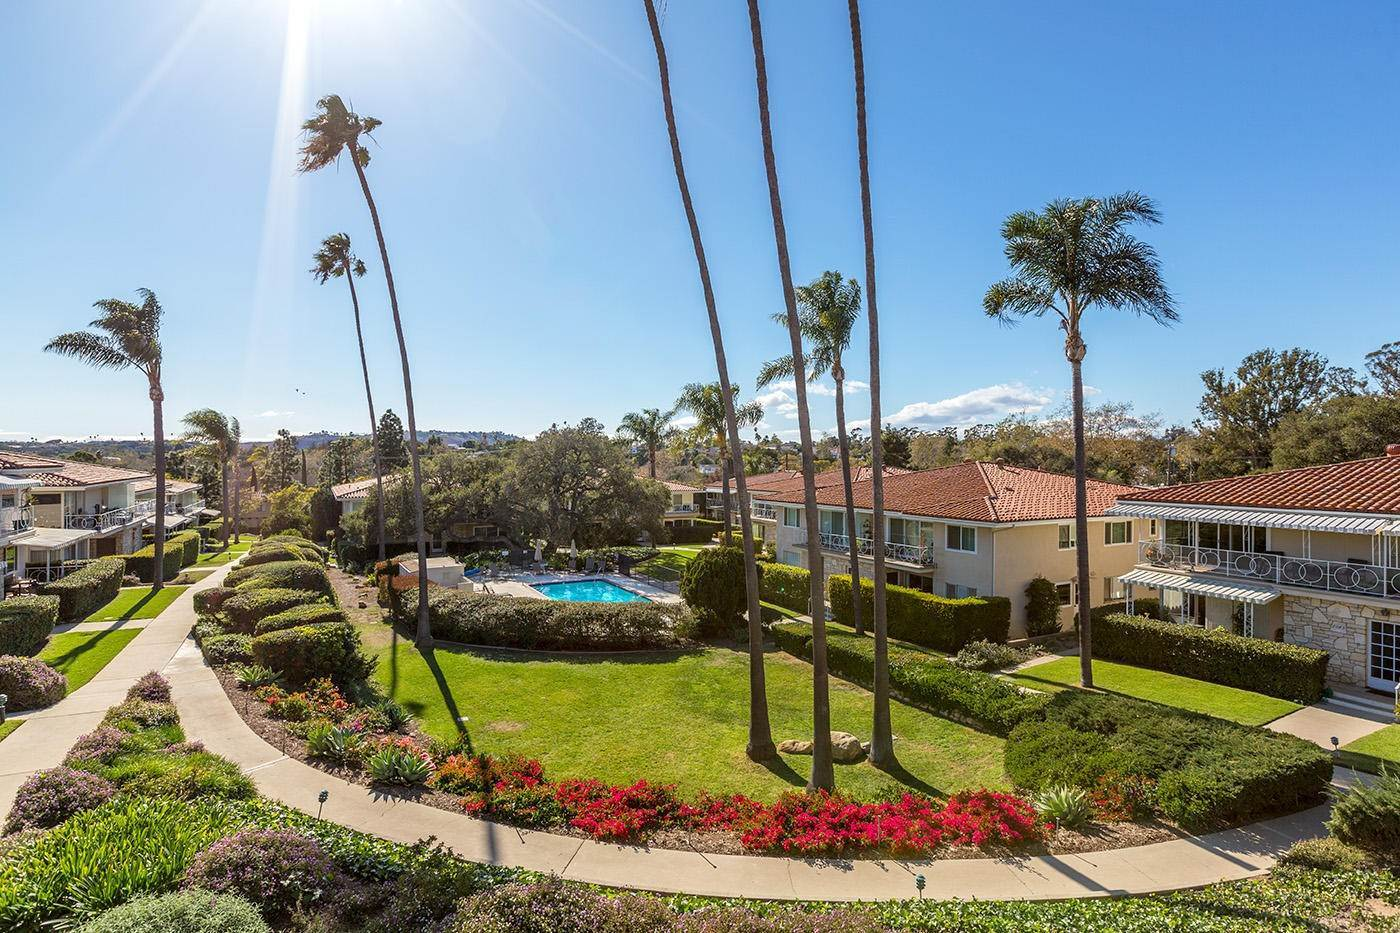 Co-op / Condo for Sale at 2645 Streetate Street Santa Barbara, California 93105 United States